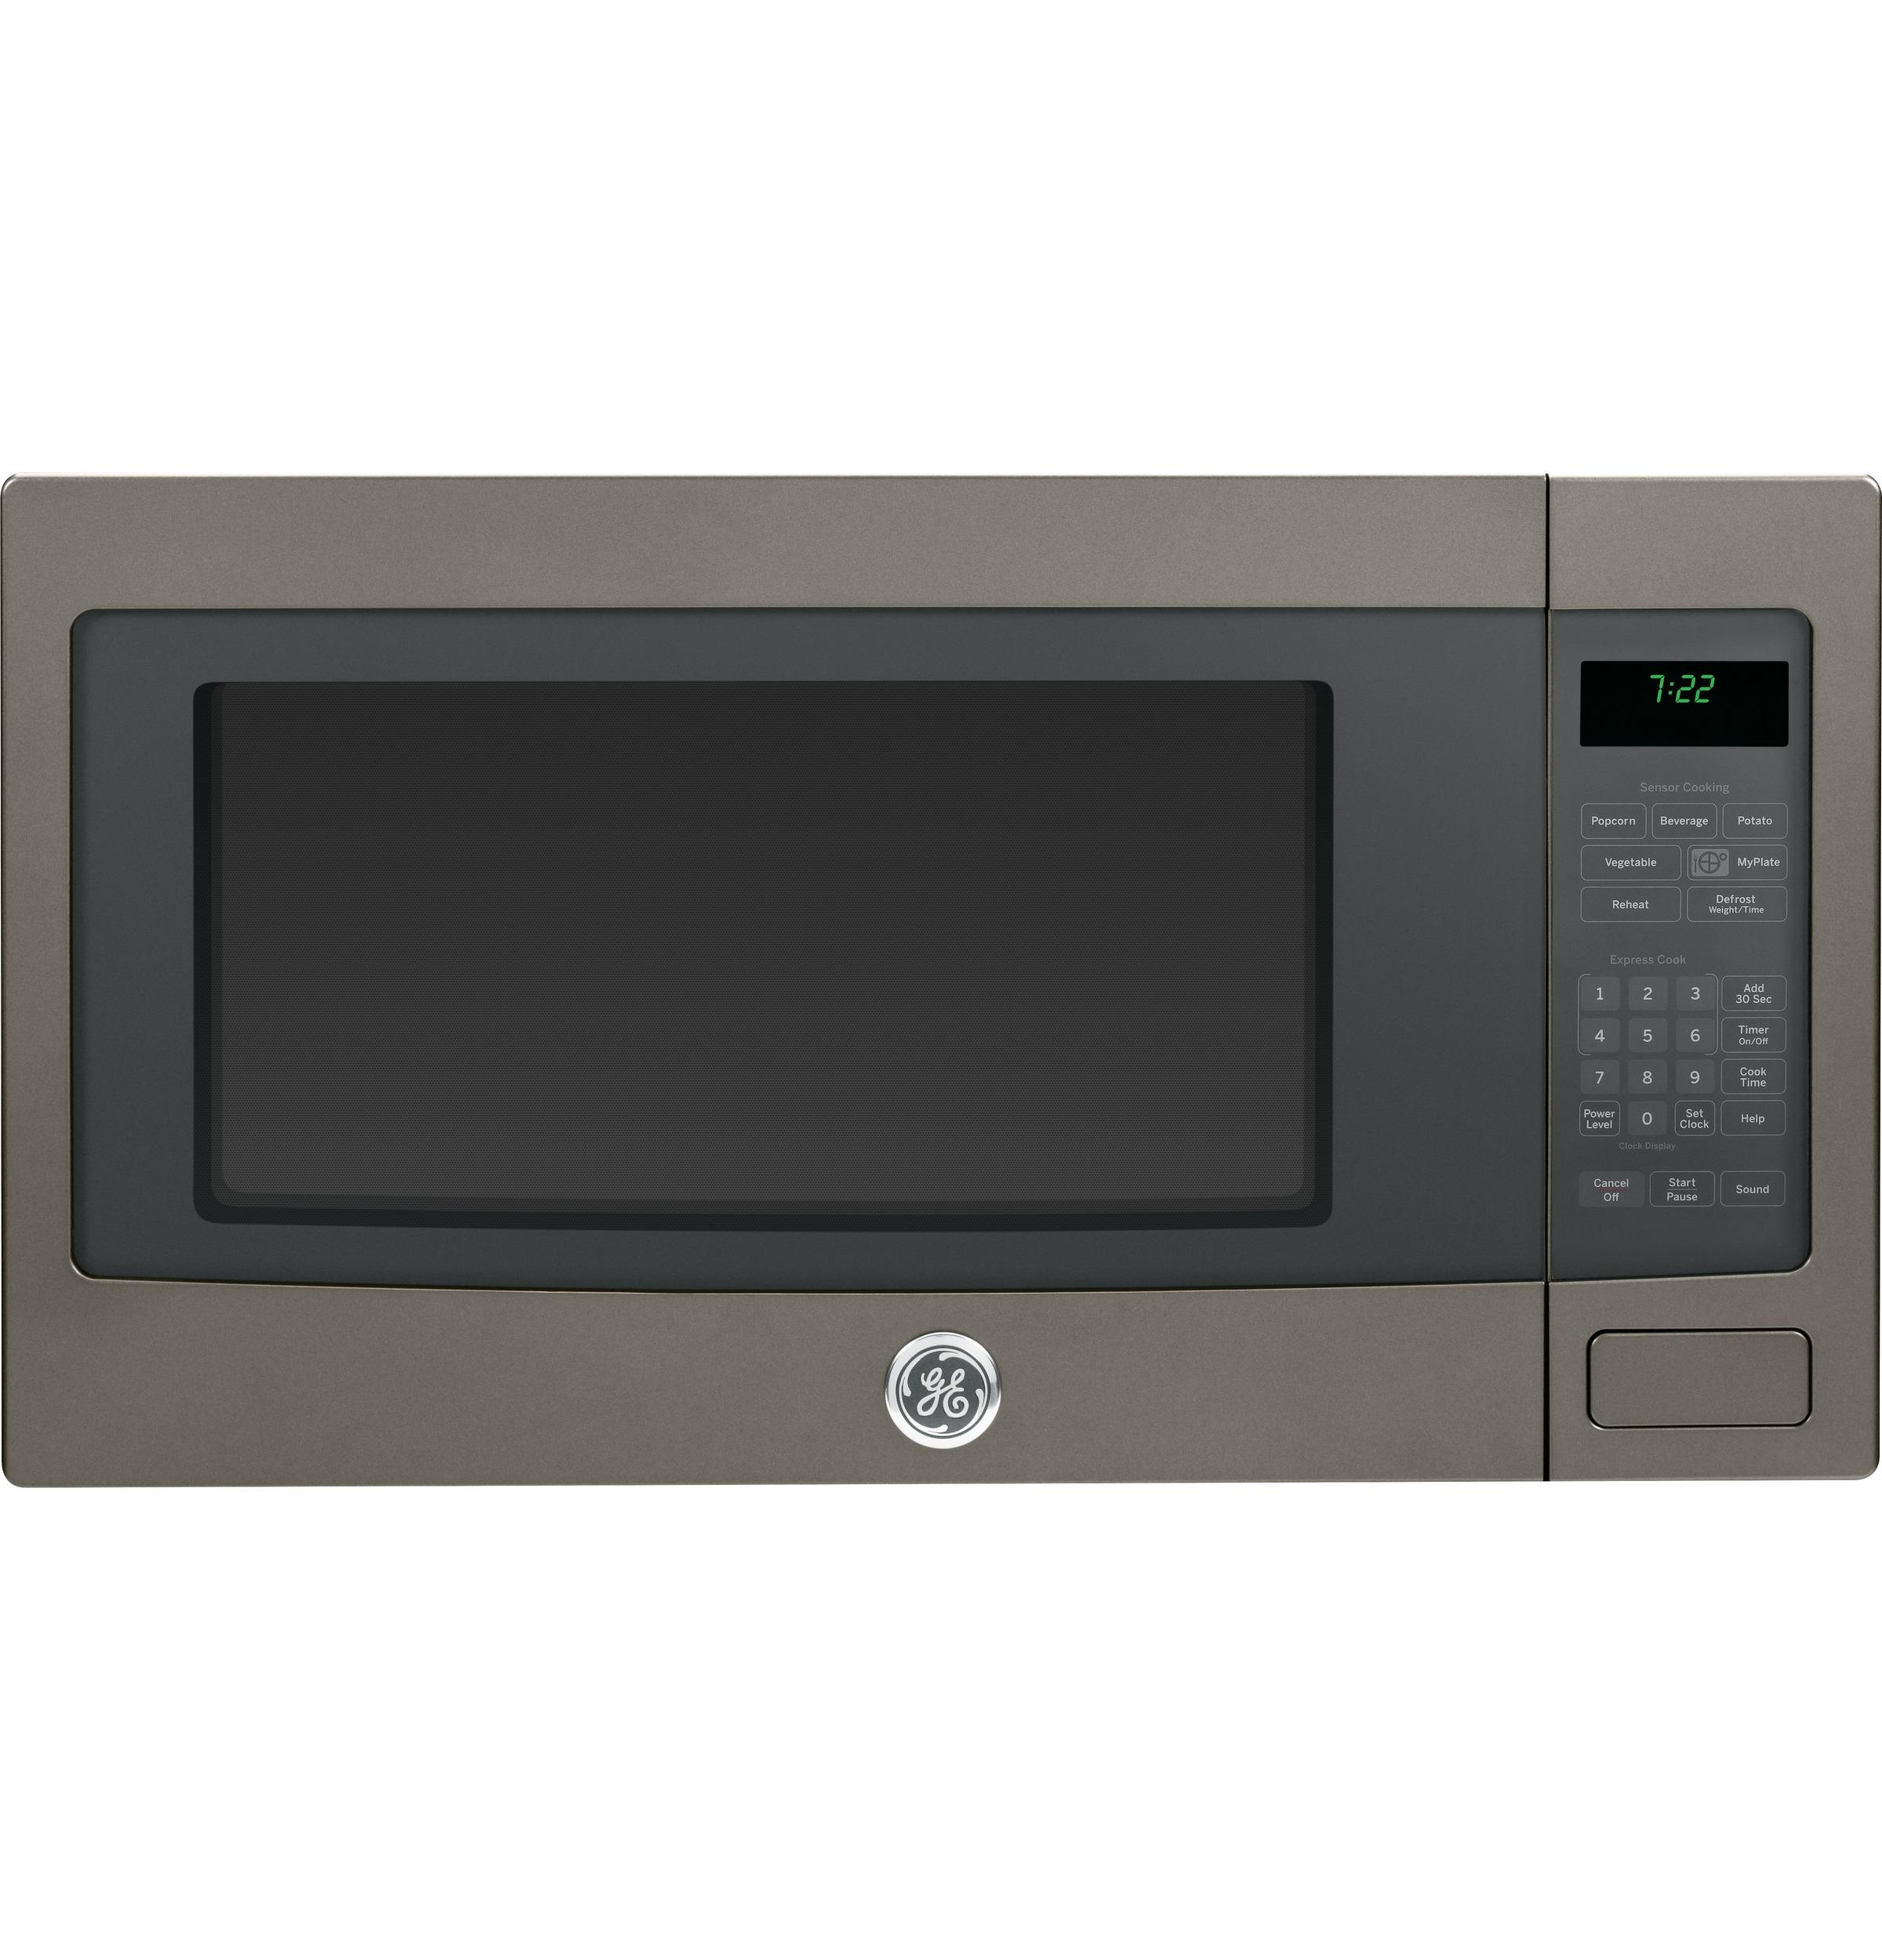 GE APPLIANCES PEB7226EHES